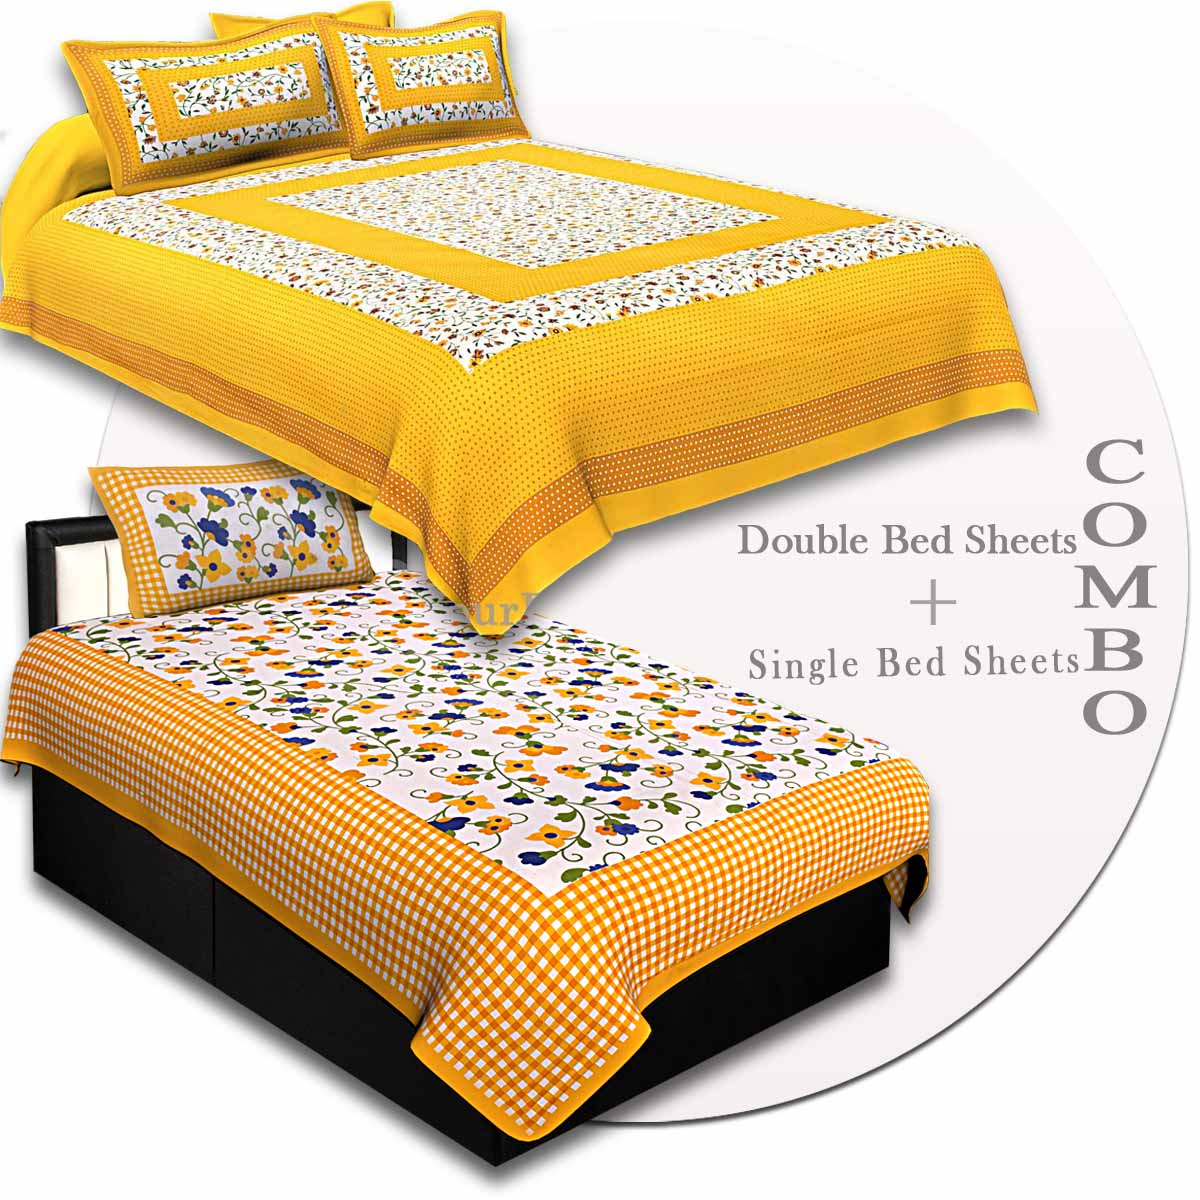 COMBO81- Set of 1 Double Bedsheet and  1 Single Bedsheet With  2+1 Pillow Cover